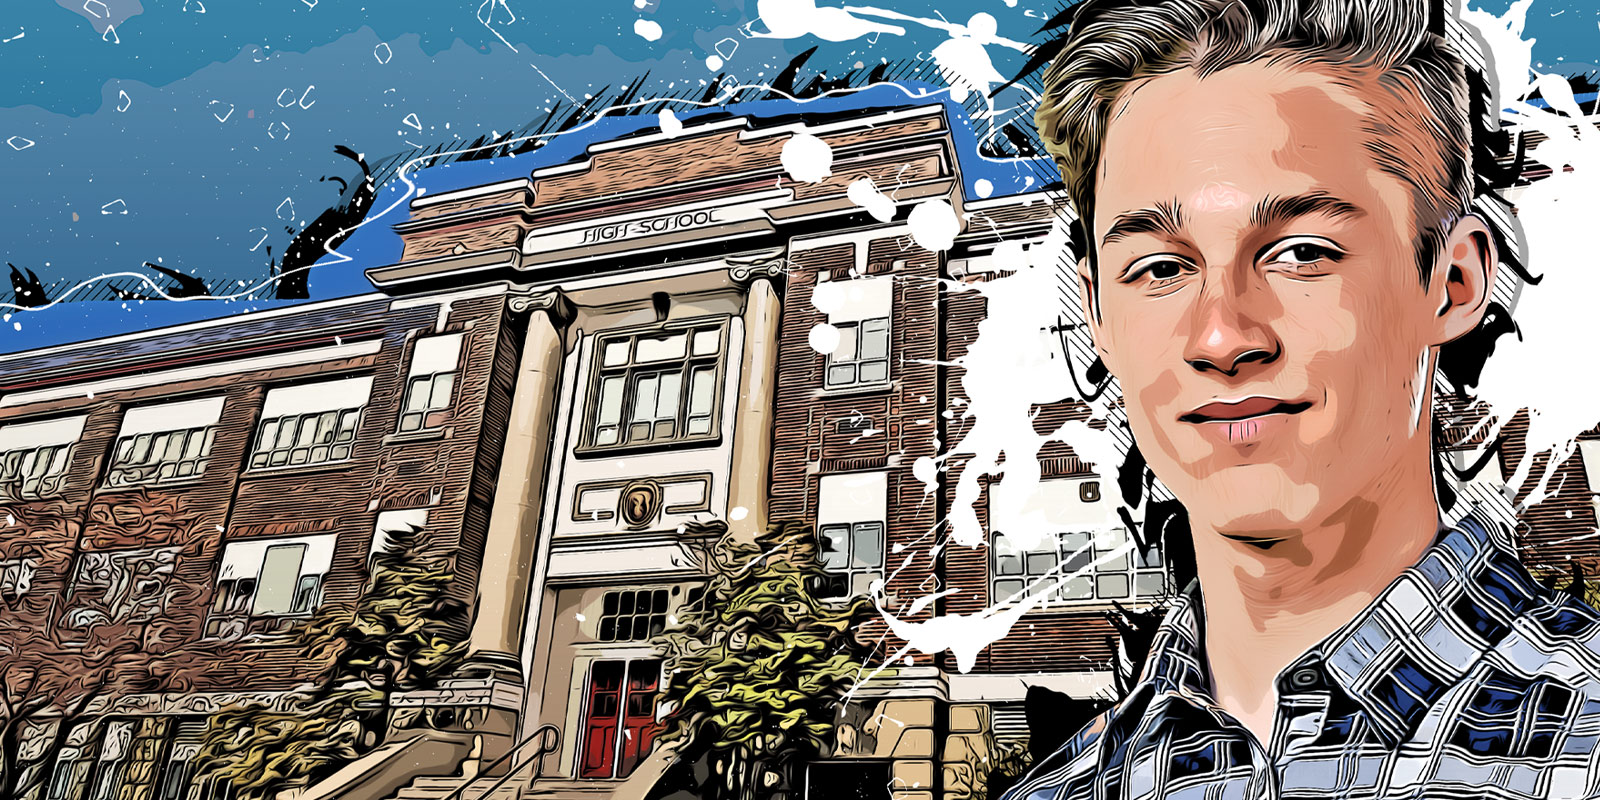 Illustration of Brody in front of a high school